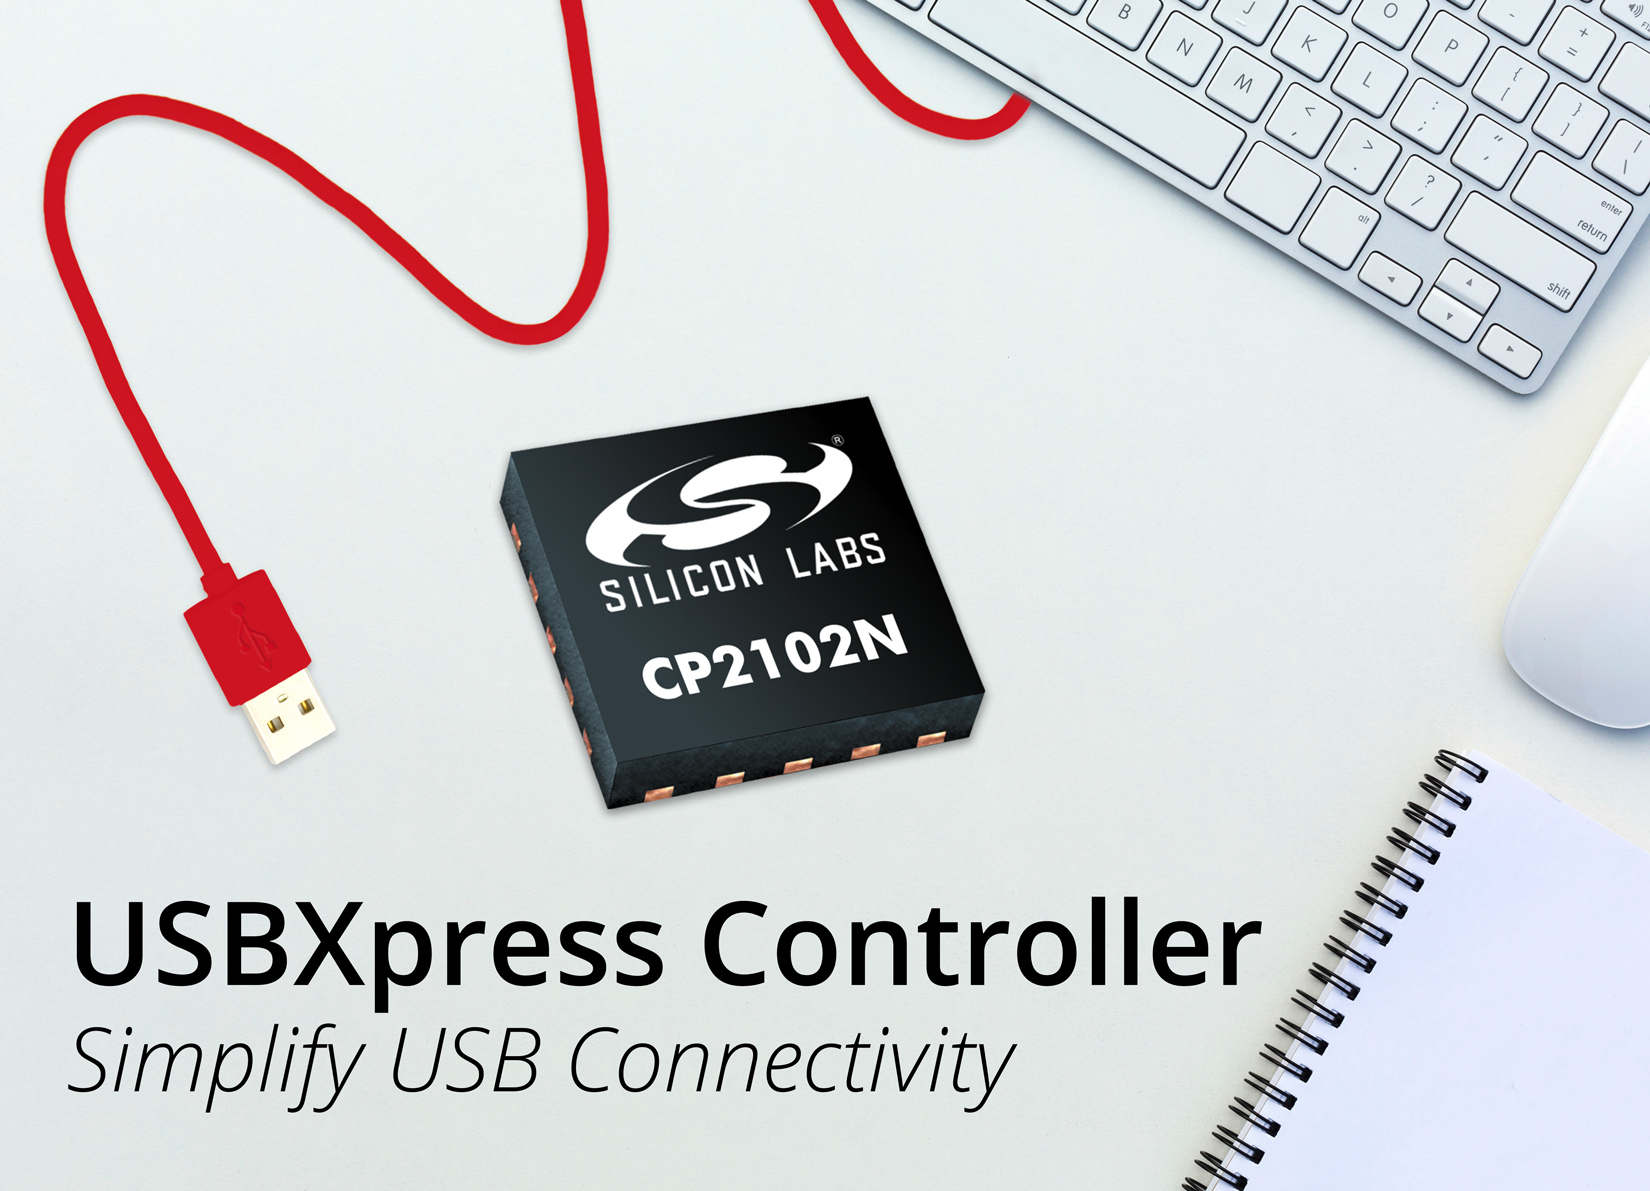 New USBXpress Controller from Silicon Labs Simplifies USB